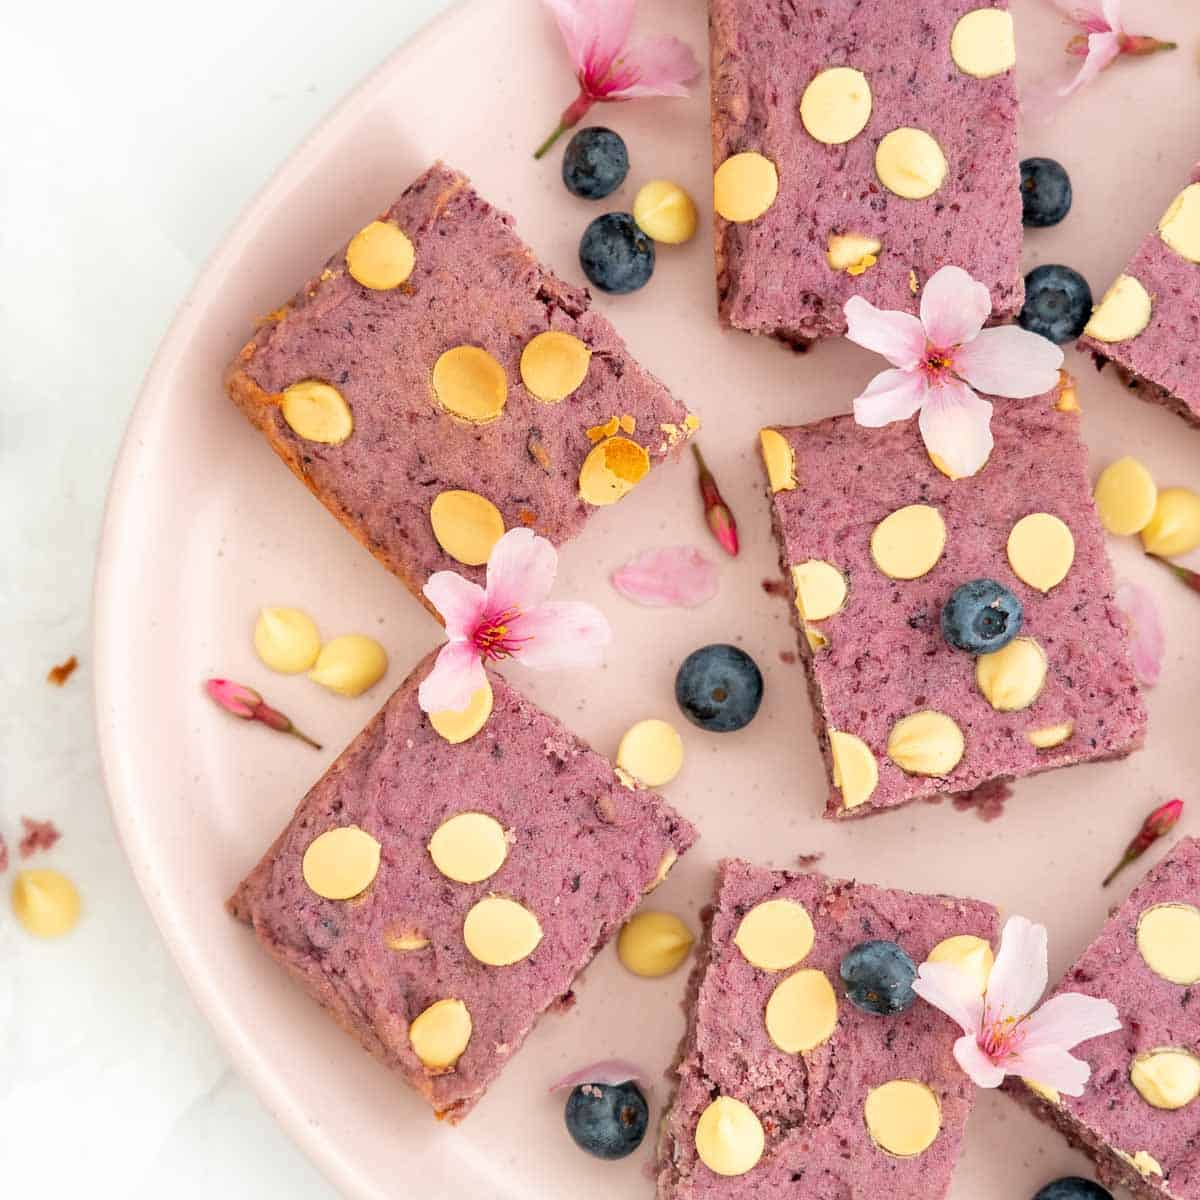 Purple cookie bars on a pink plate scattered with blueberries, pink flours and white chocolate chips.